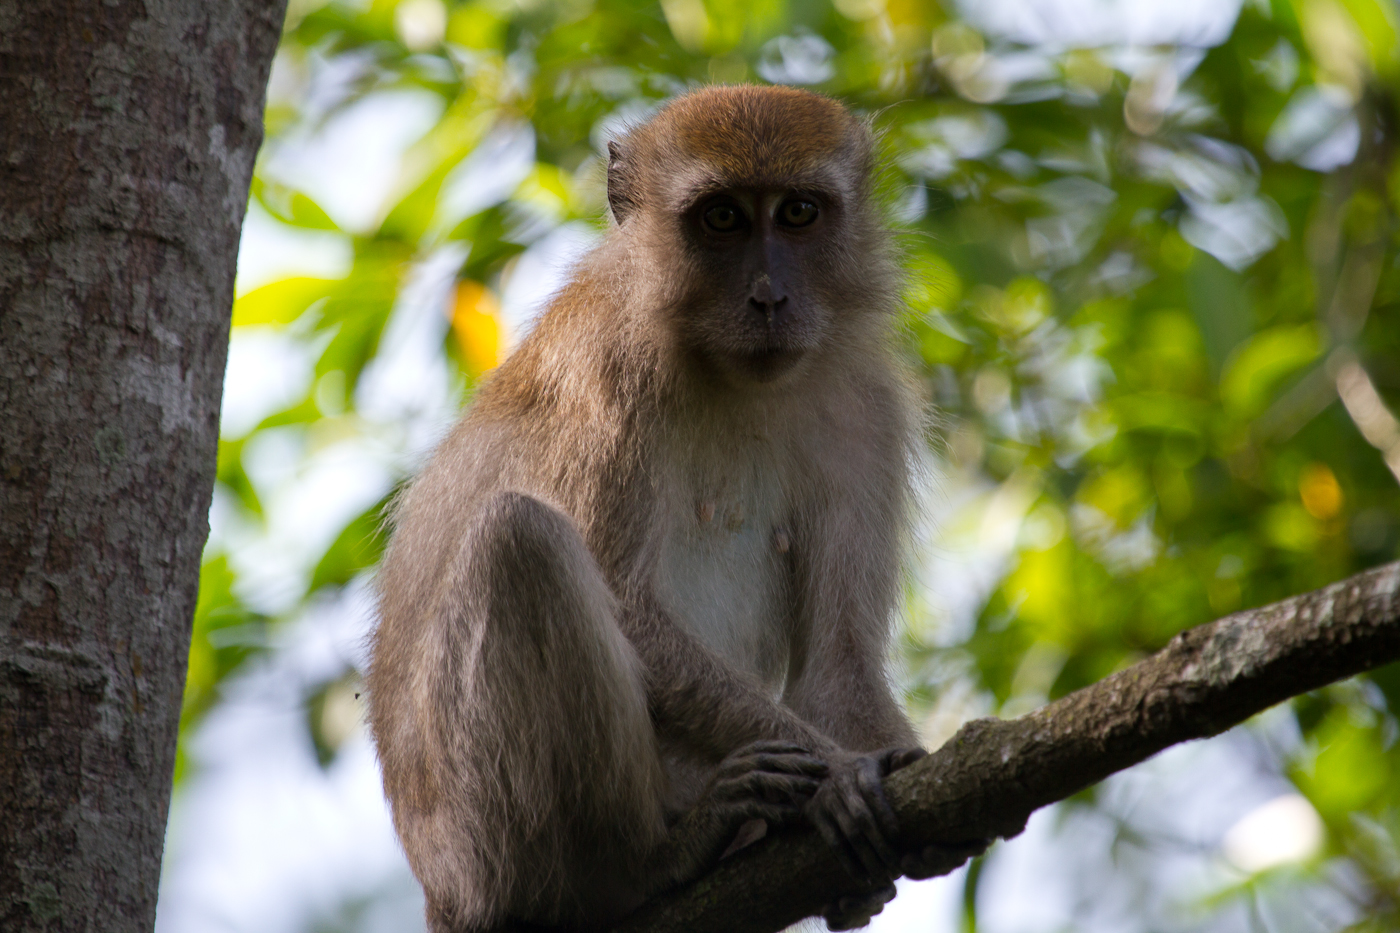 Long-Tailed Macaque, Taman Alam, Kuala Selangor Nature Park. These cute, annoying creatures really have lost their fear of man. One word, aggressive.